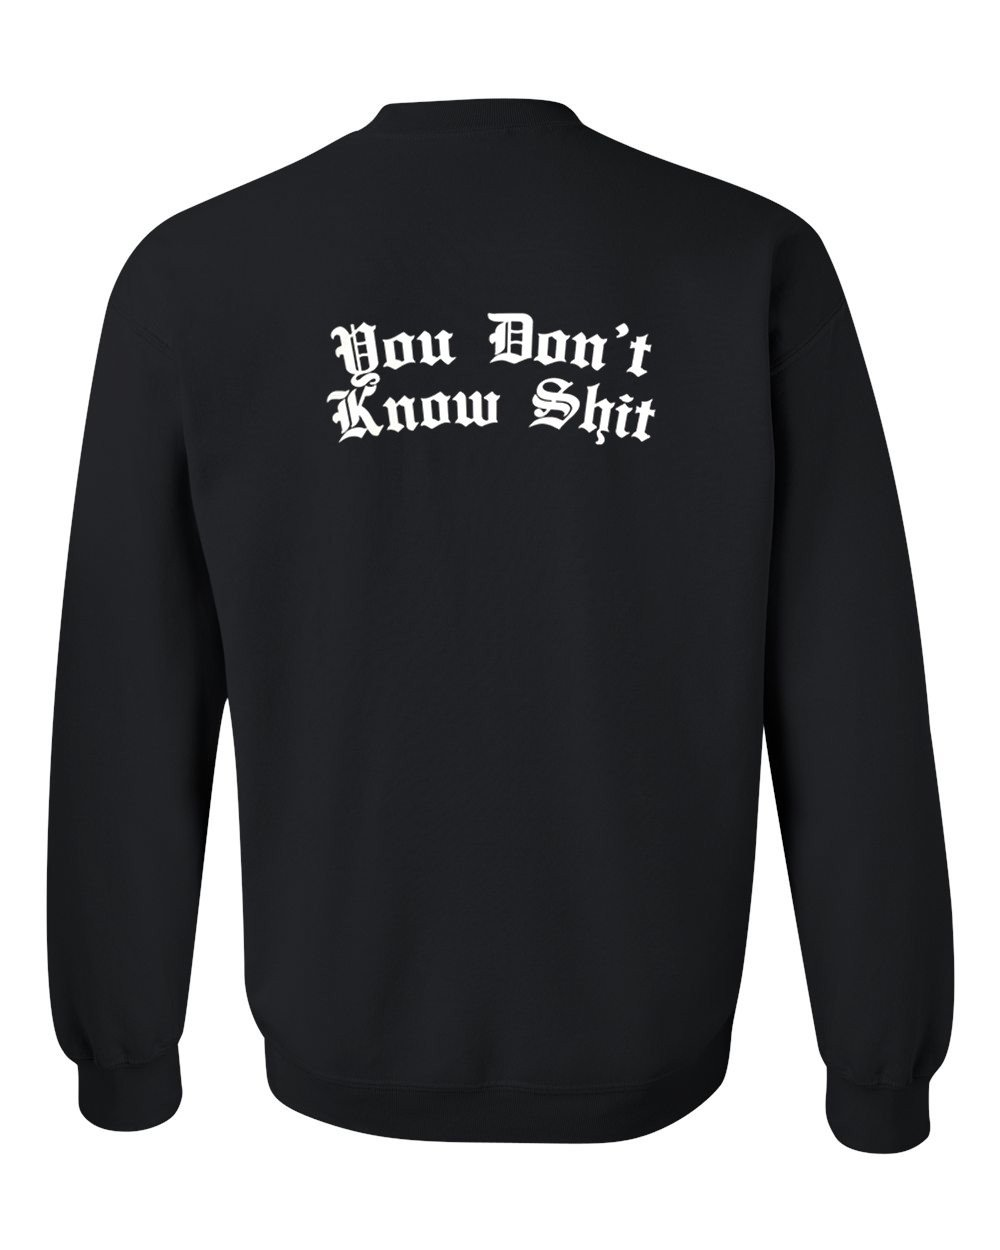 You don't know shit sweatshirt back